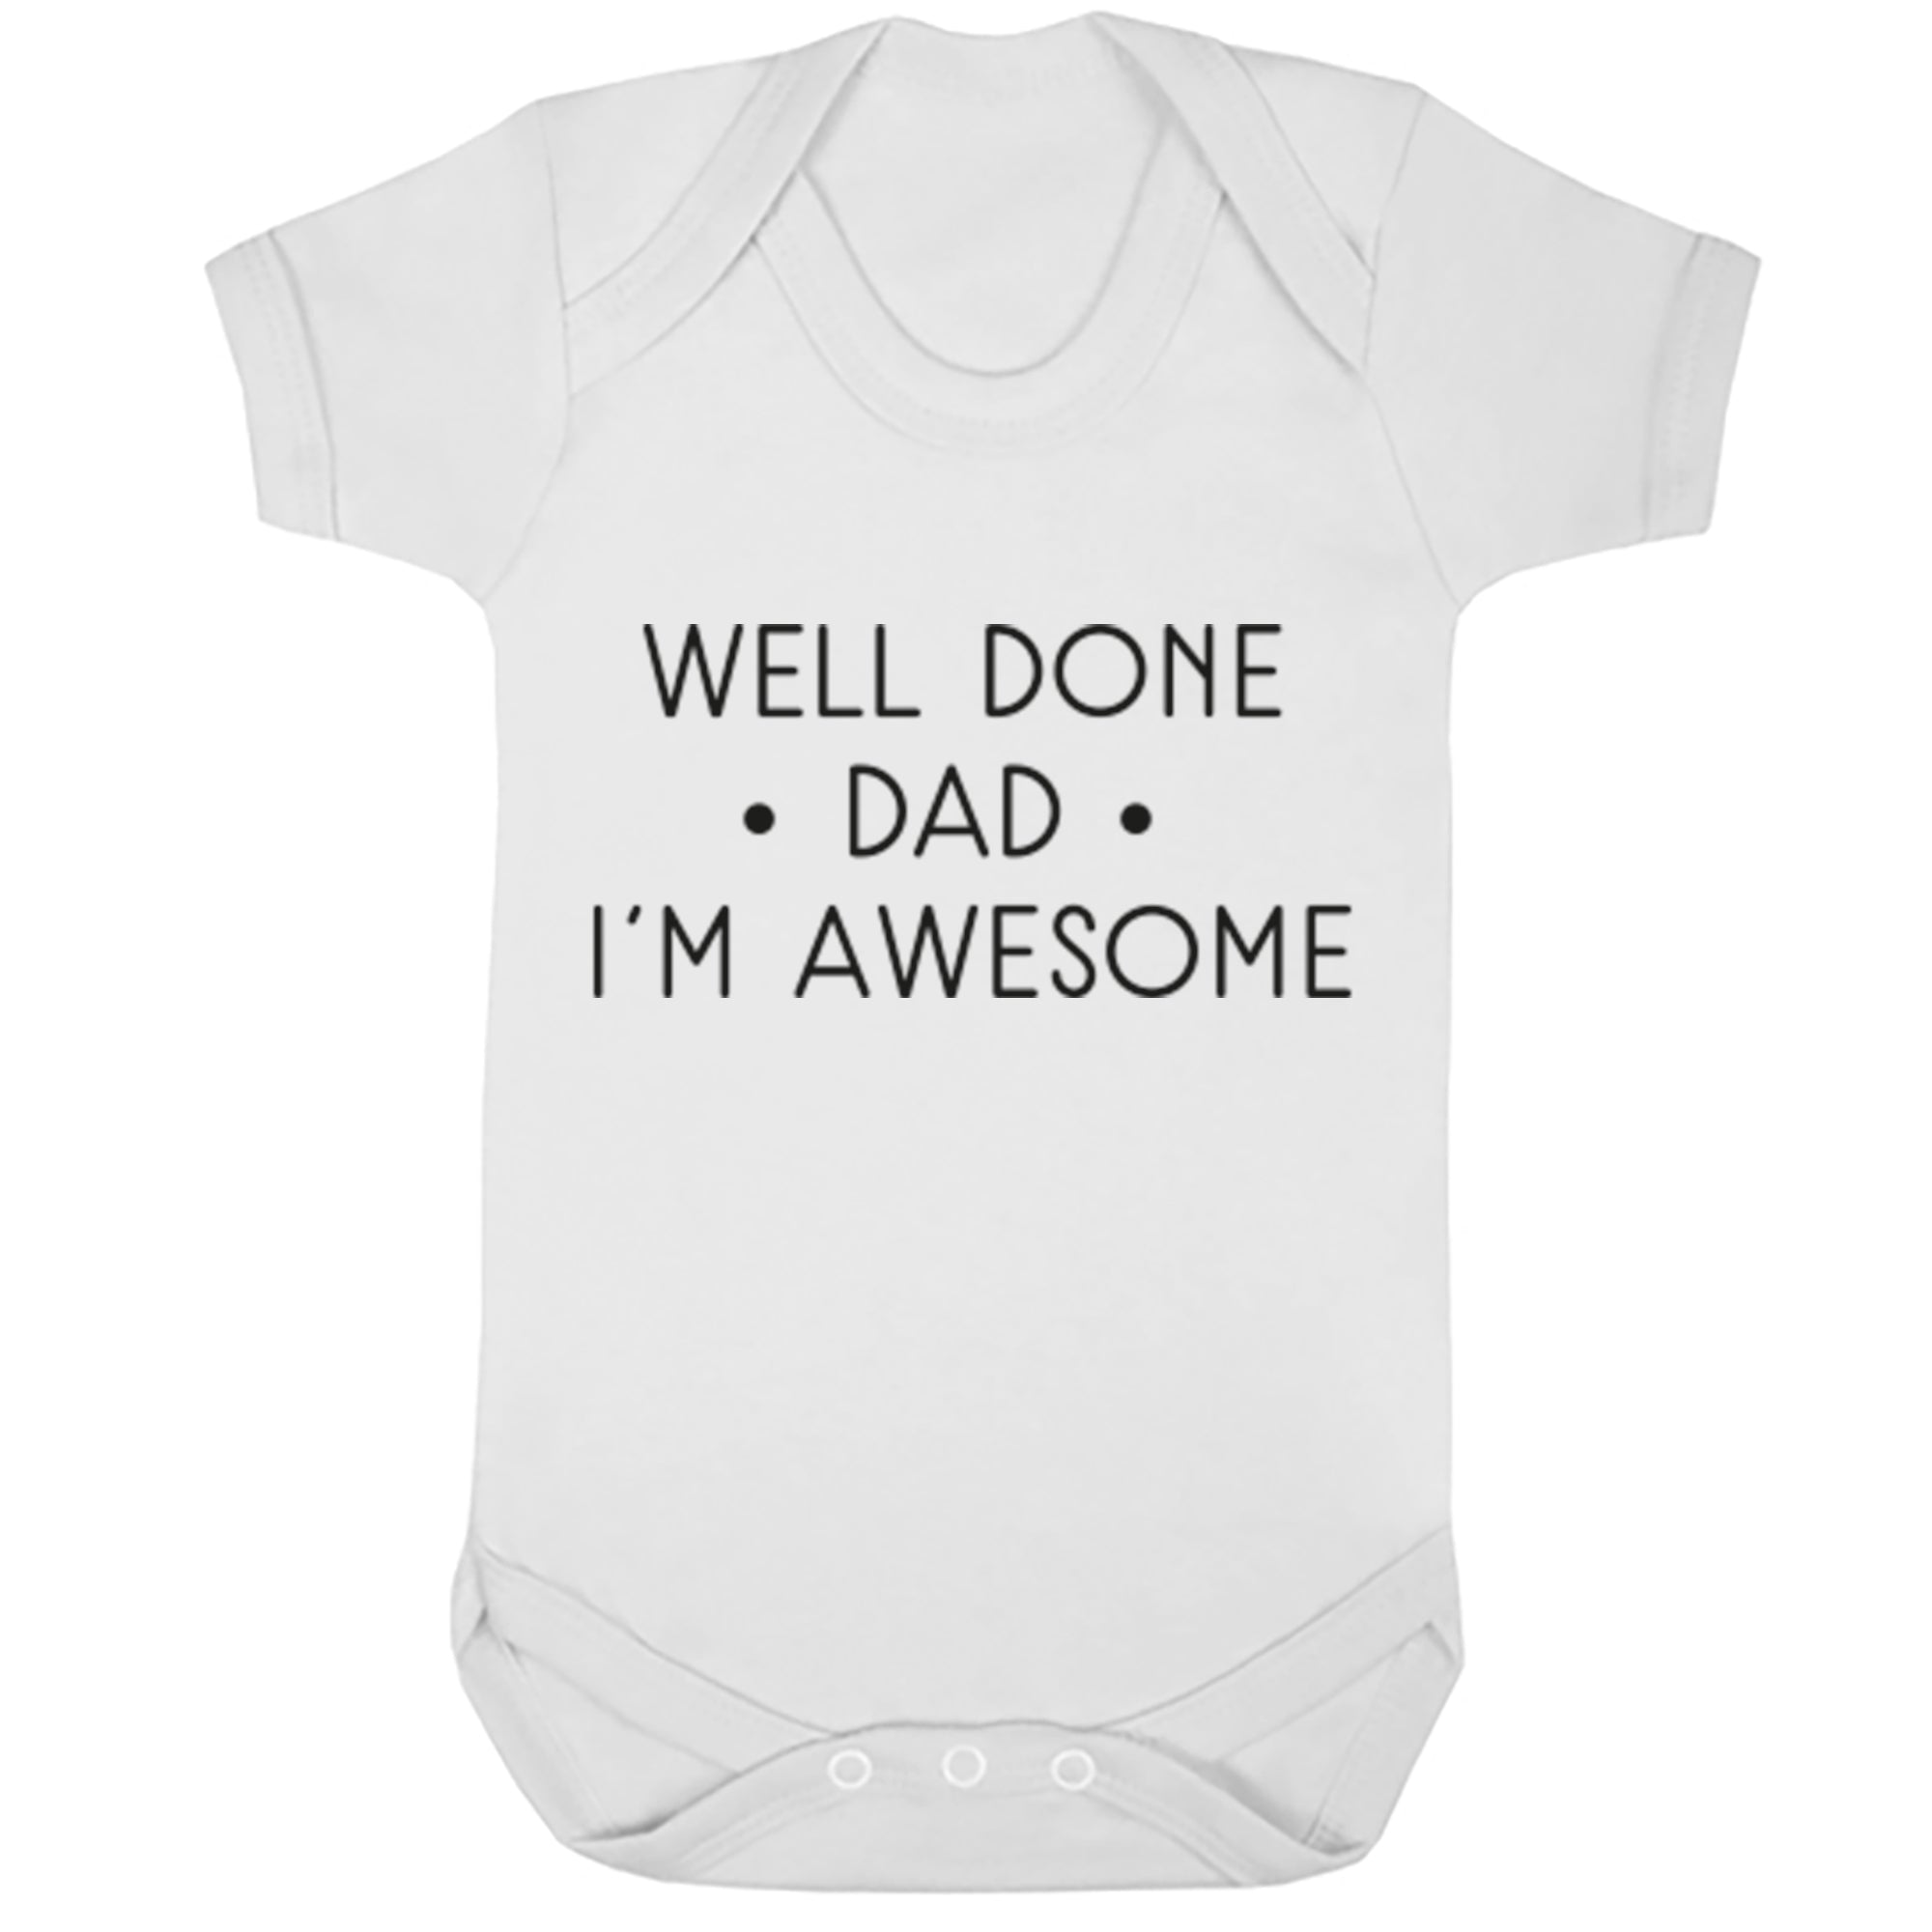 Well Done Dad I'm Awesome Baby Vest S0726 - Illustrated Identity Ltd.